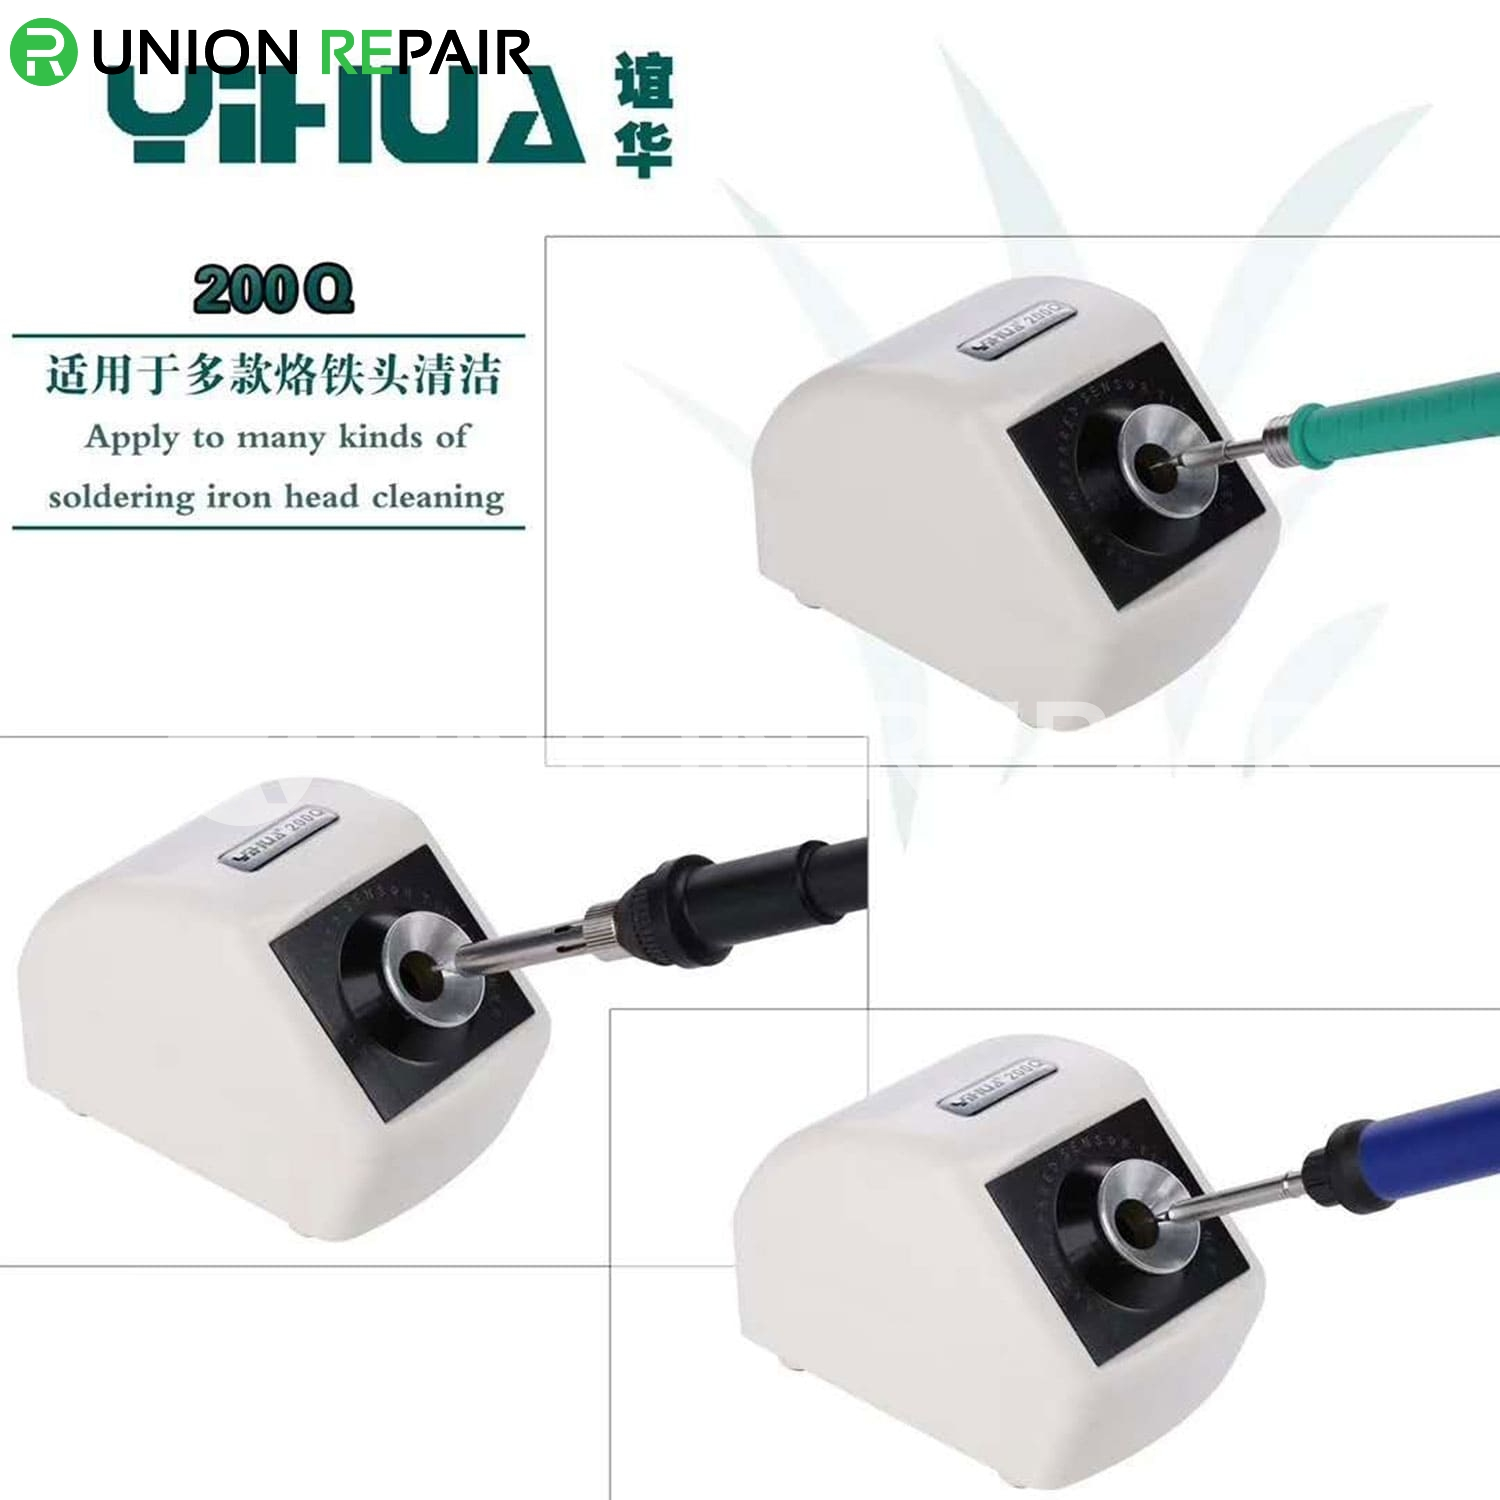 YIHUA 200Q Infrared Sensor Smart Induction Soldering Iron Tip Cleaner